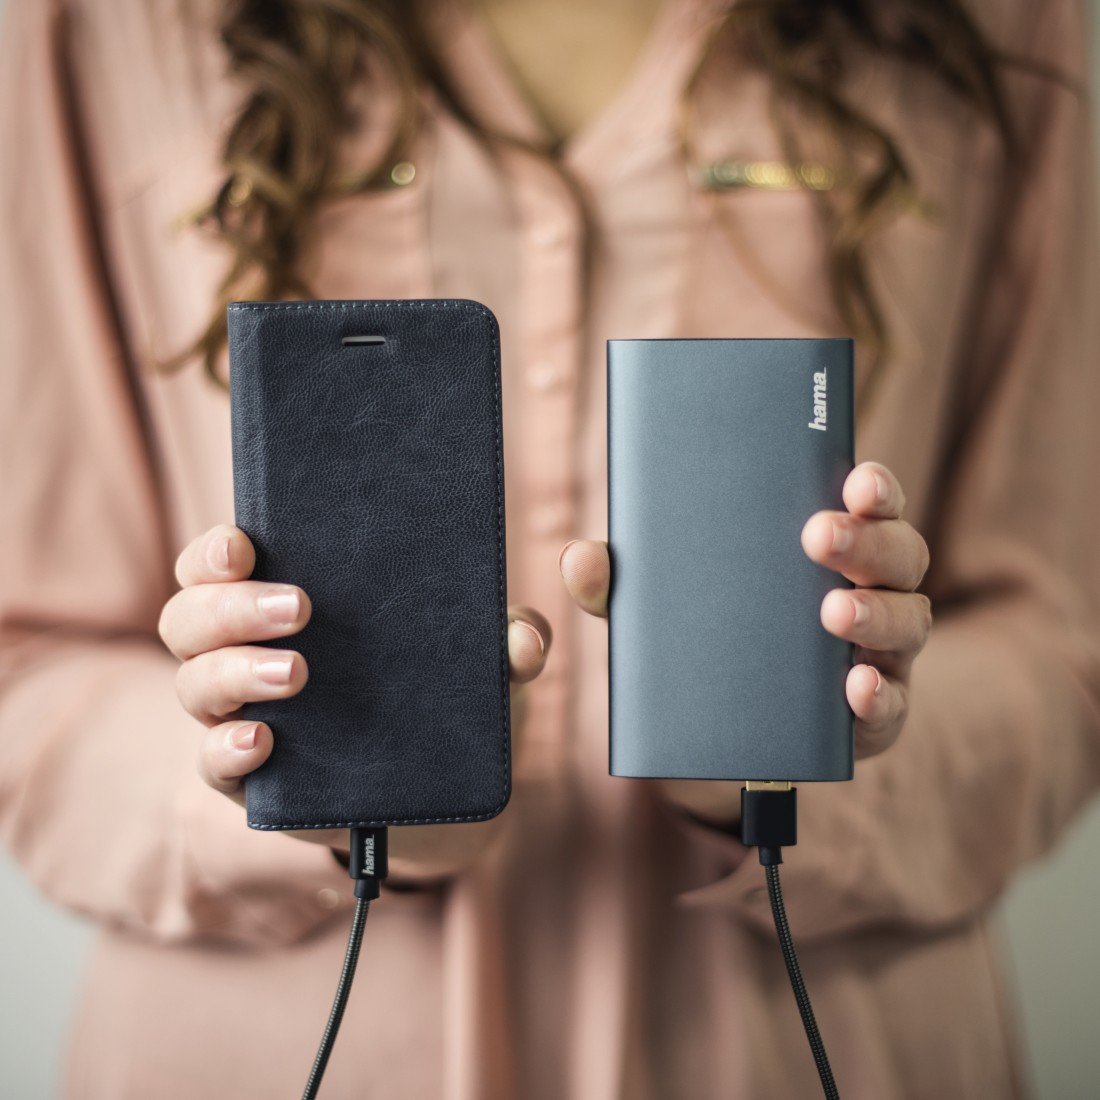 awx3 High-Res Appliance 3 - Hama, Premium Alu Power Pack, 5000 mAh, anthracite